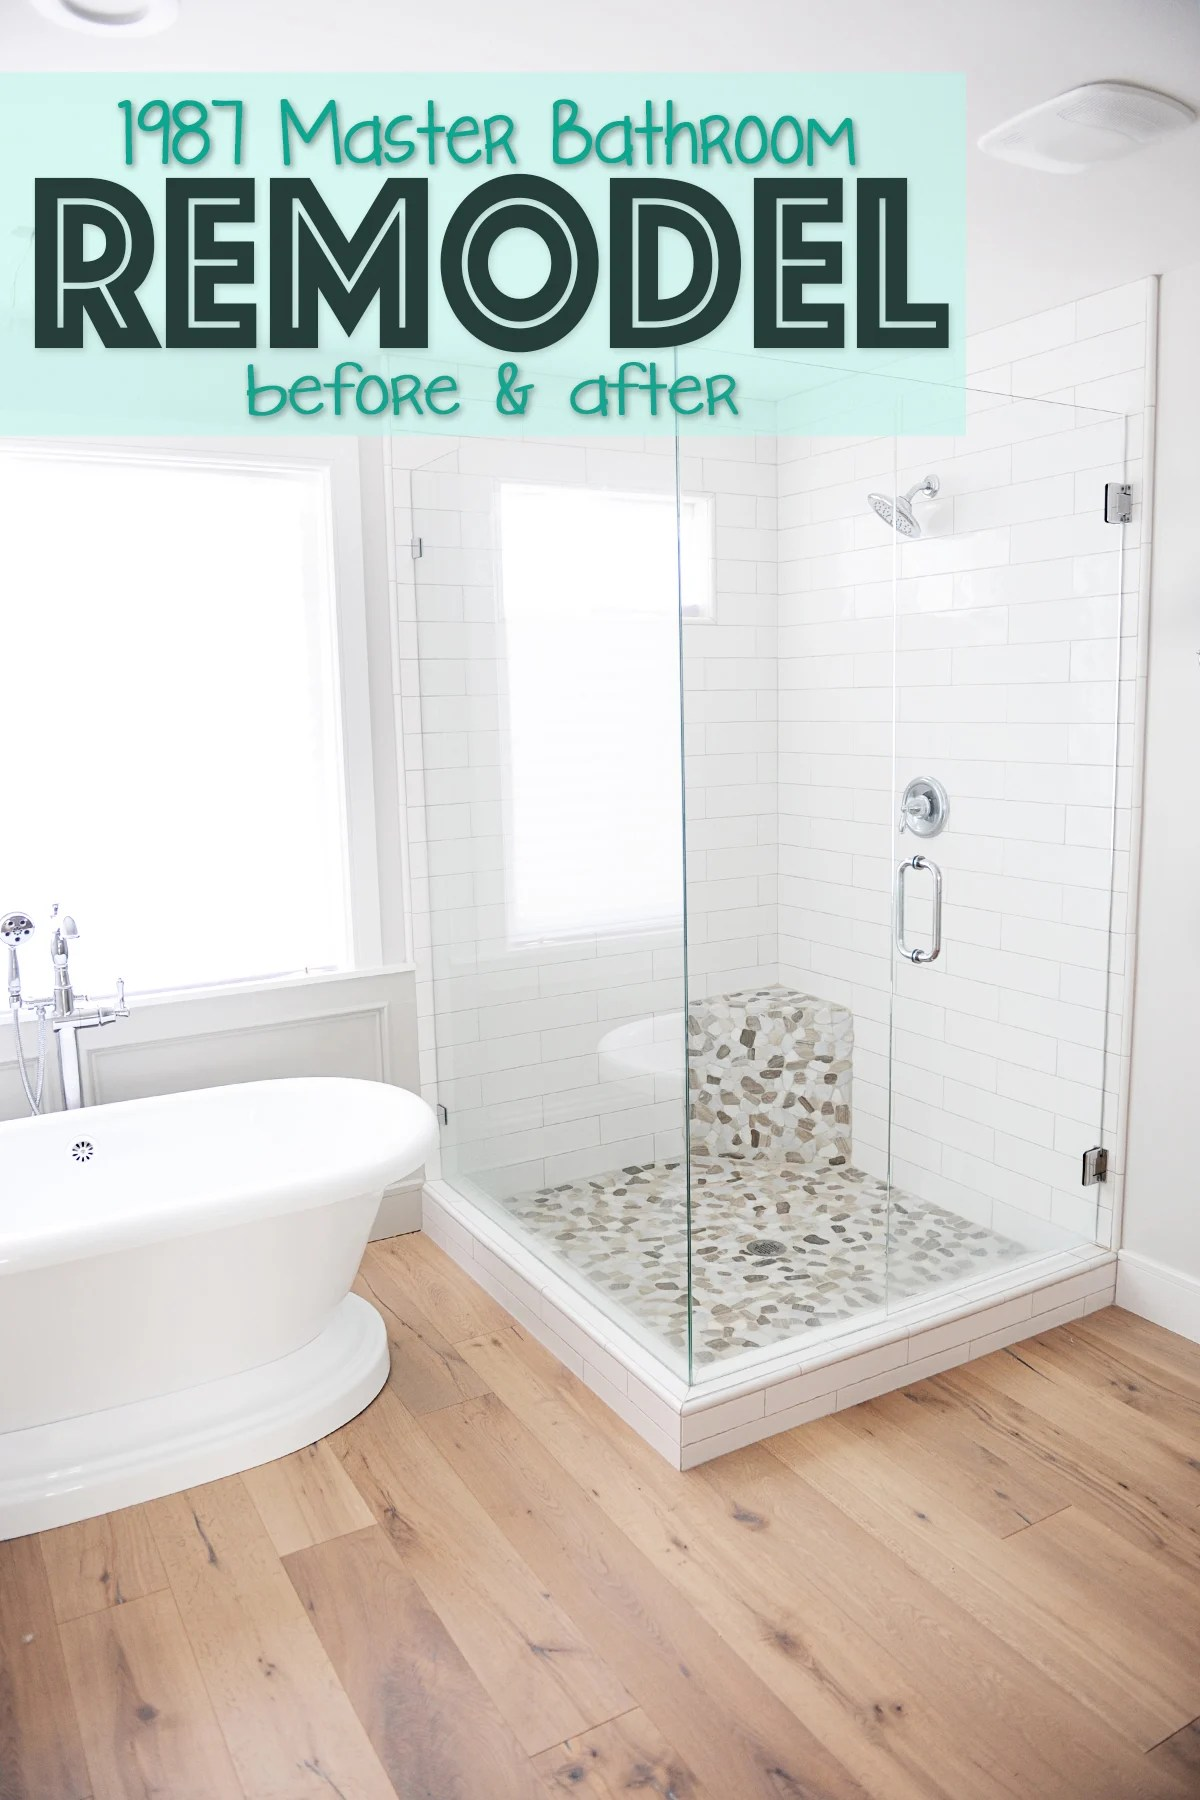 Bathroom Remodel Ideas To Inspire You: Master Bathroom Remodel & Renovation Idea: Before And After